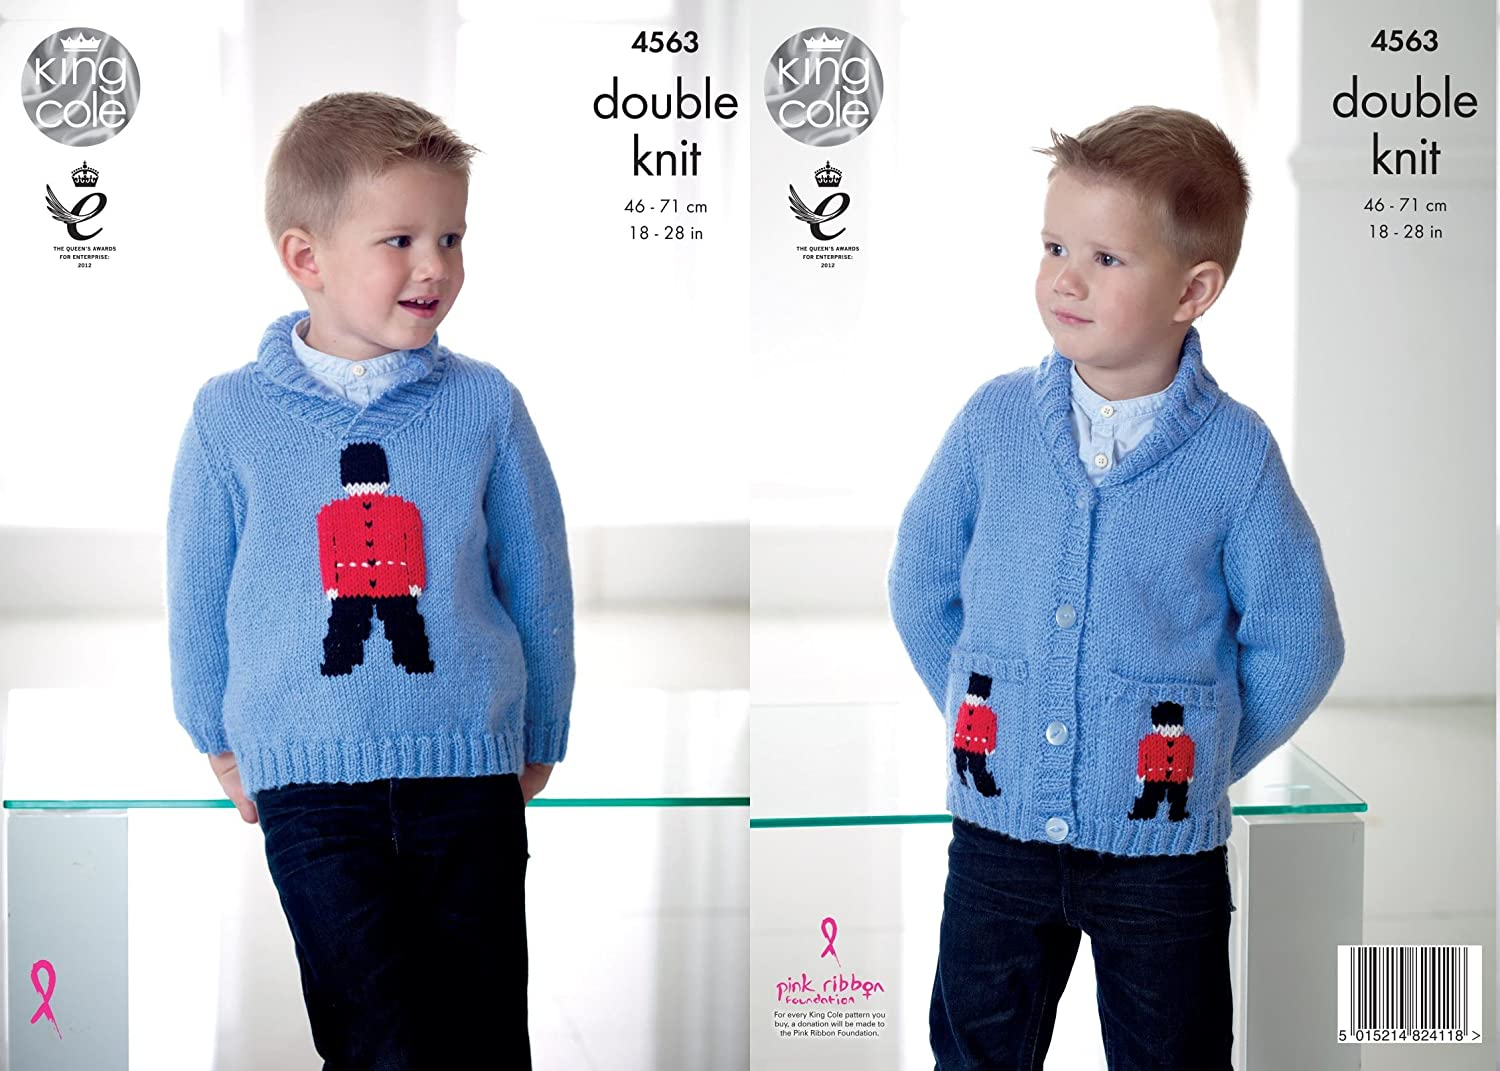 King Cole 4580 Knitting Pattern Cardigan Waistcoat in Big Value Baby Soft Chunky